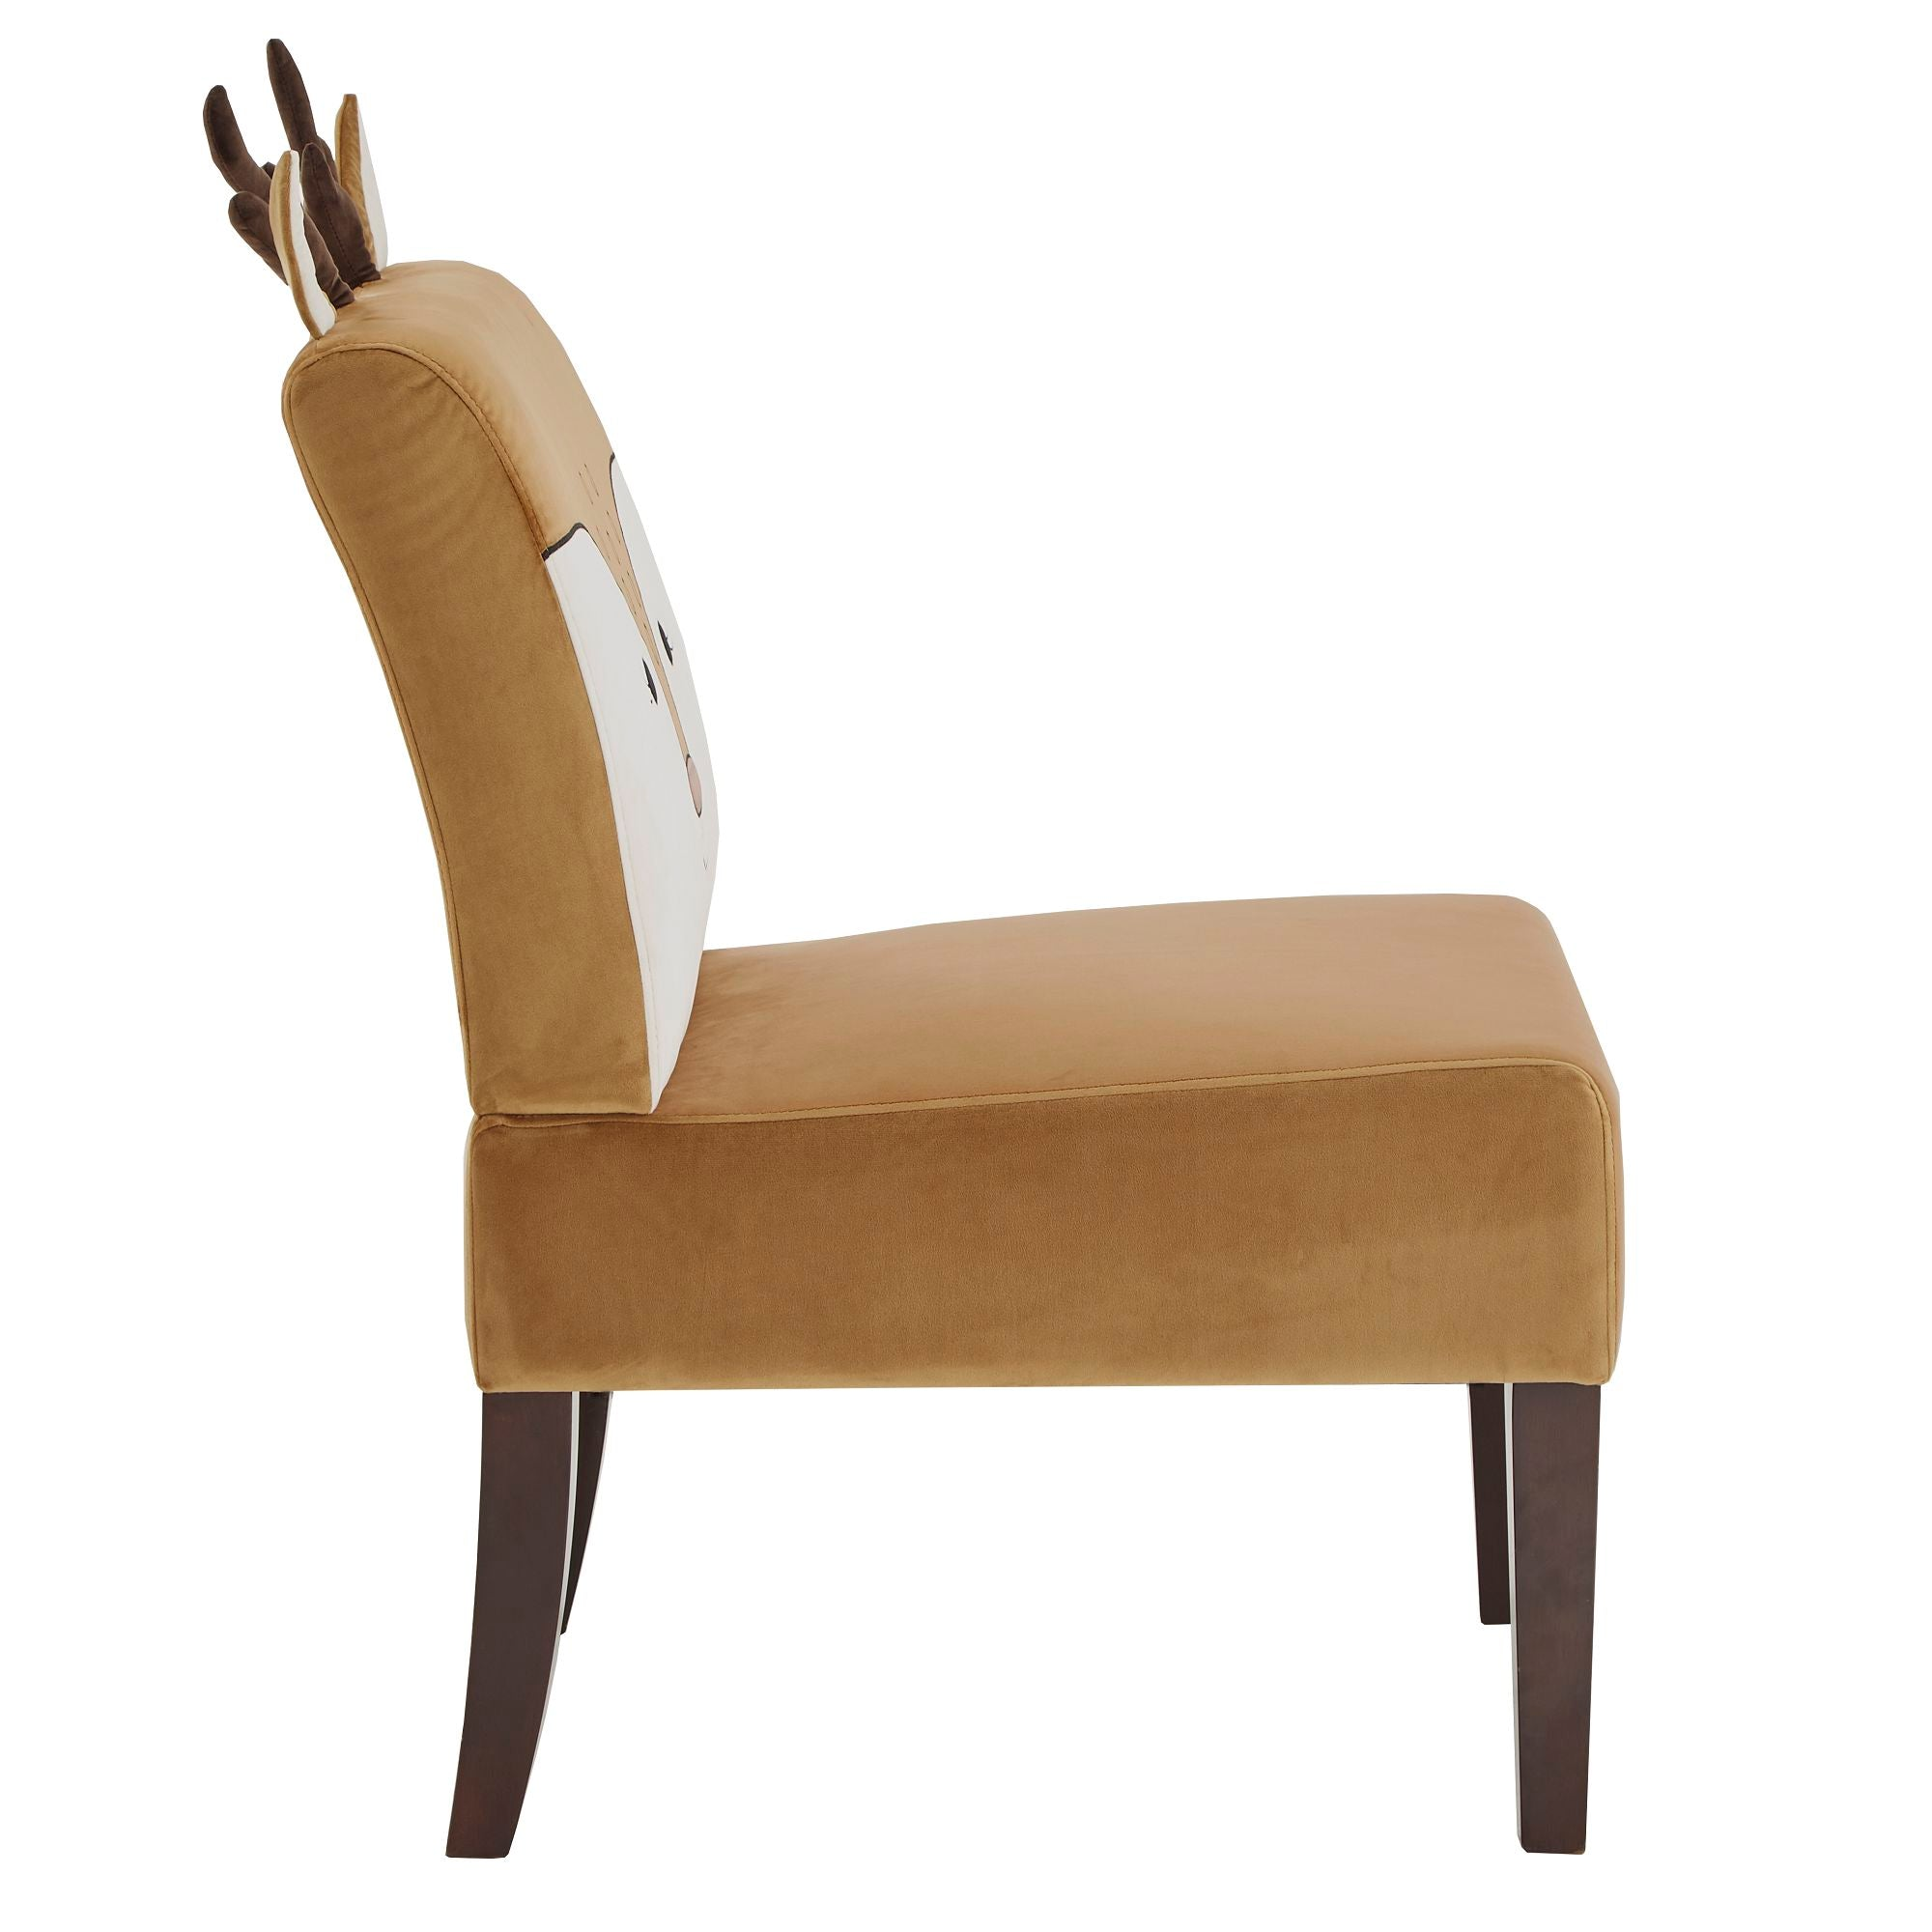 Velvet Animal Accent Chair - Deer